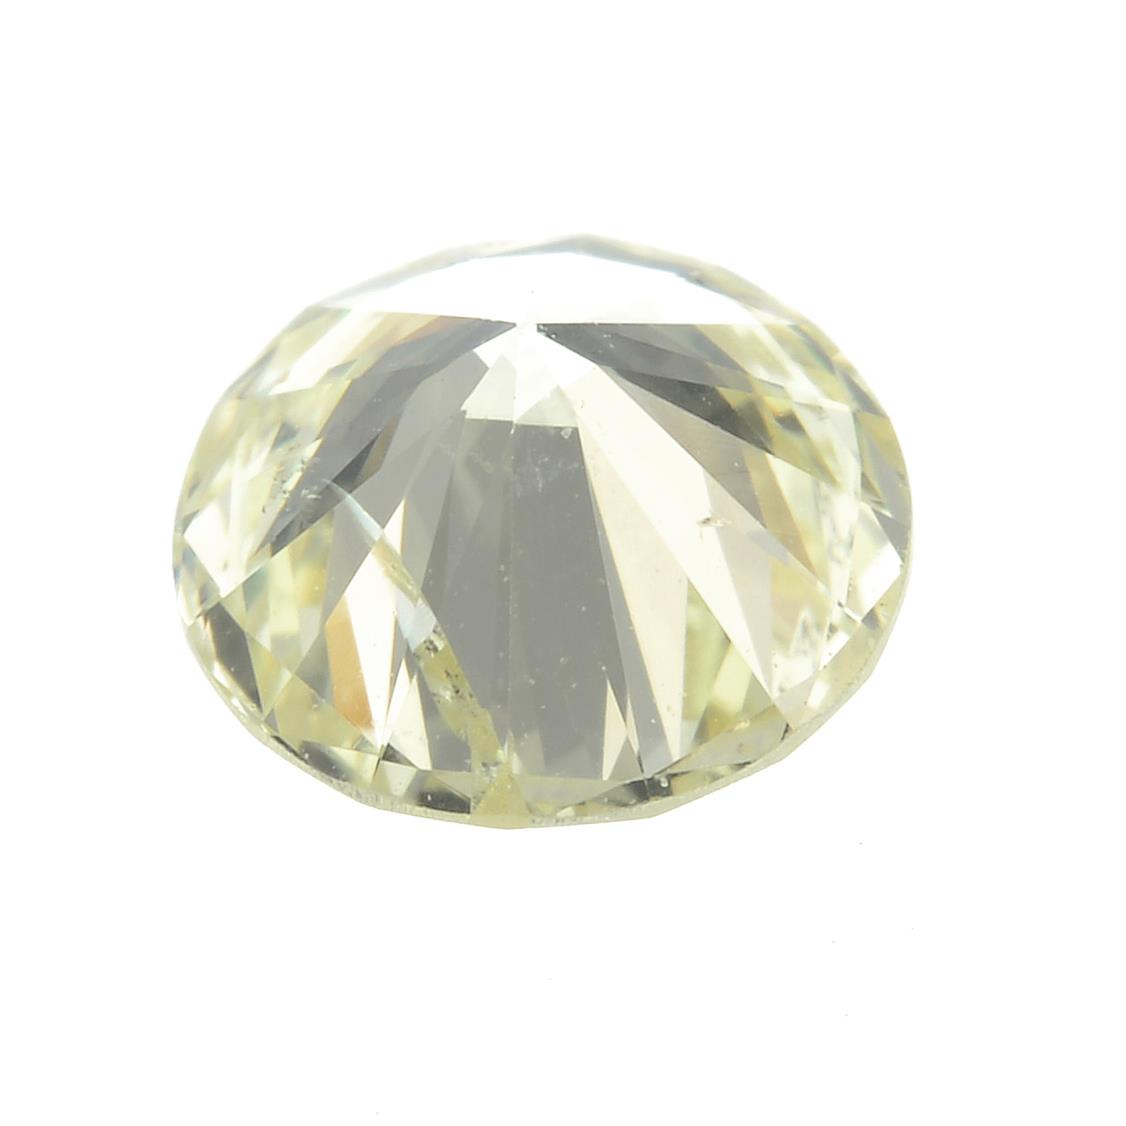 A brilliant-cut diamond, weighing 0.52ct. - Image 2 of 2